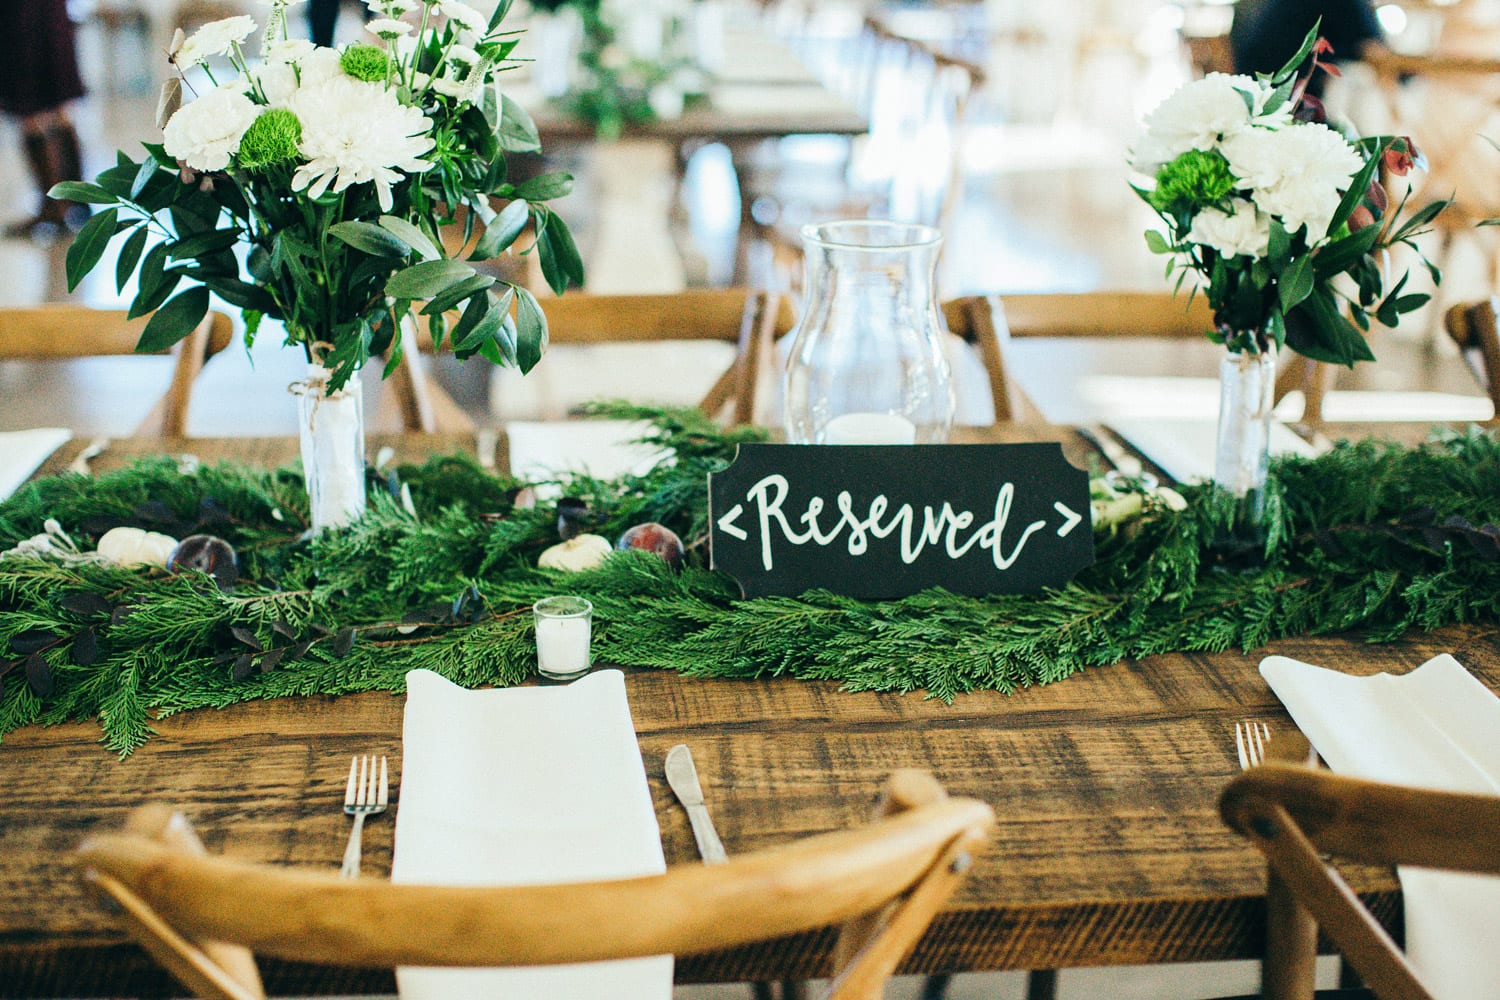 Reserved sign on dinner table